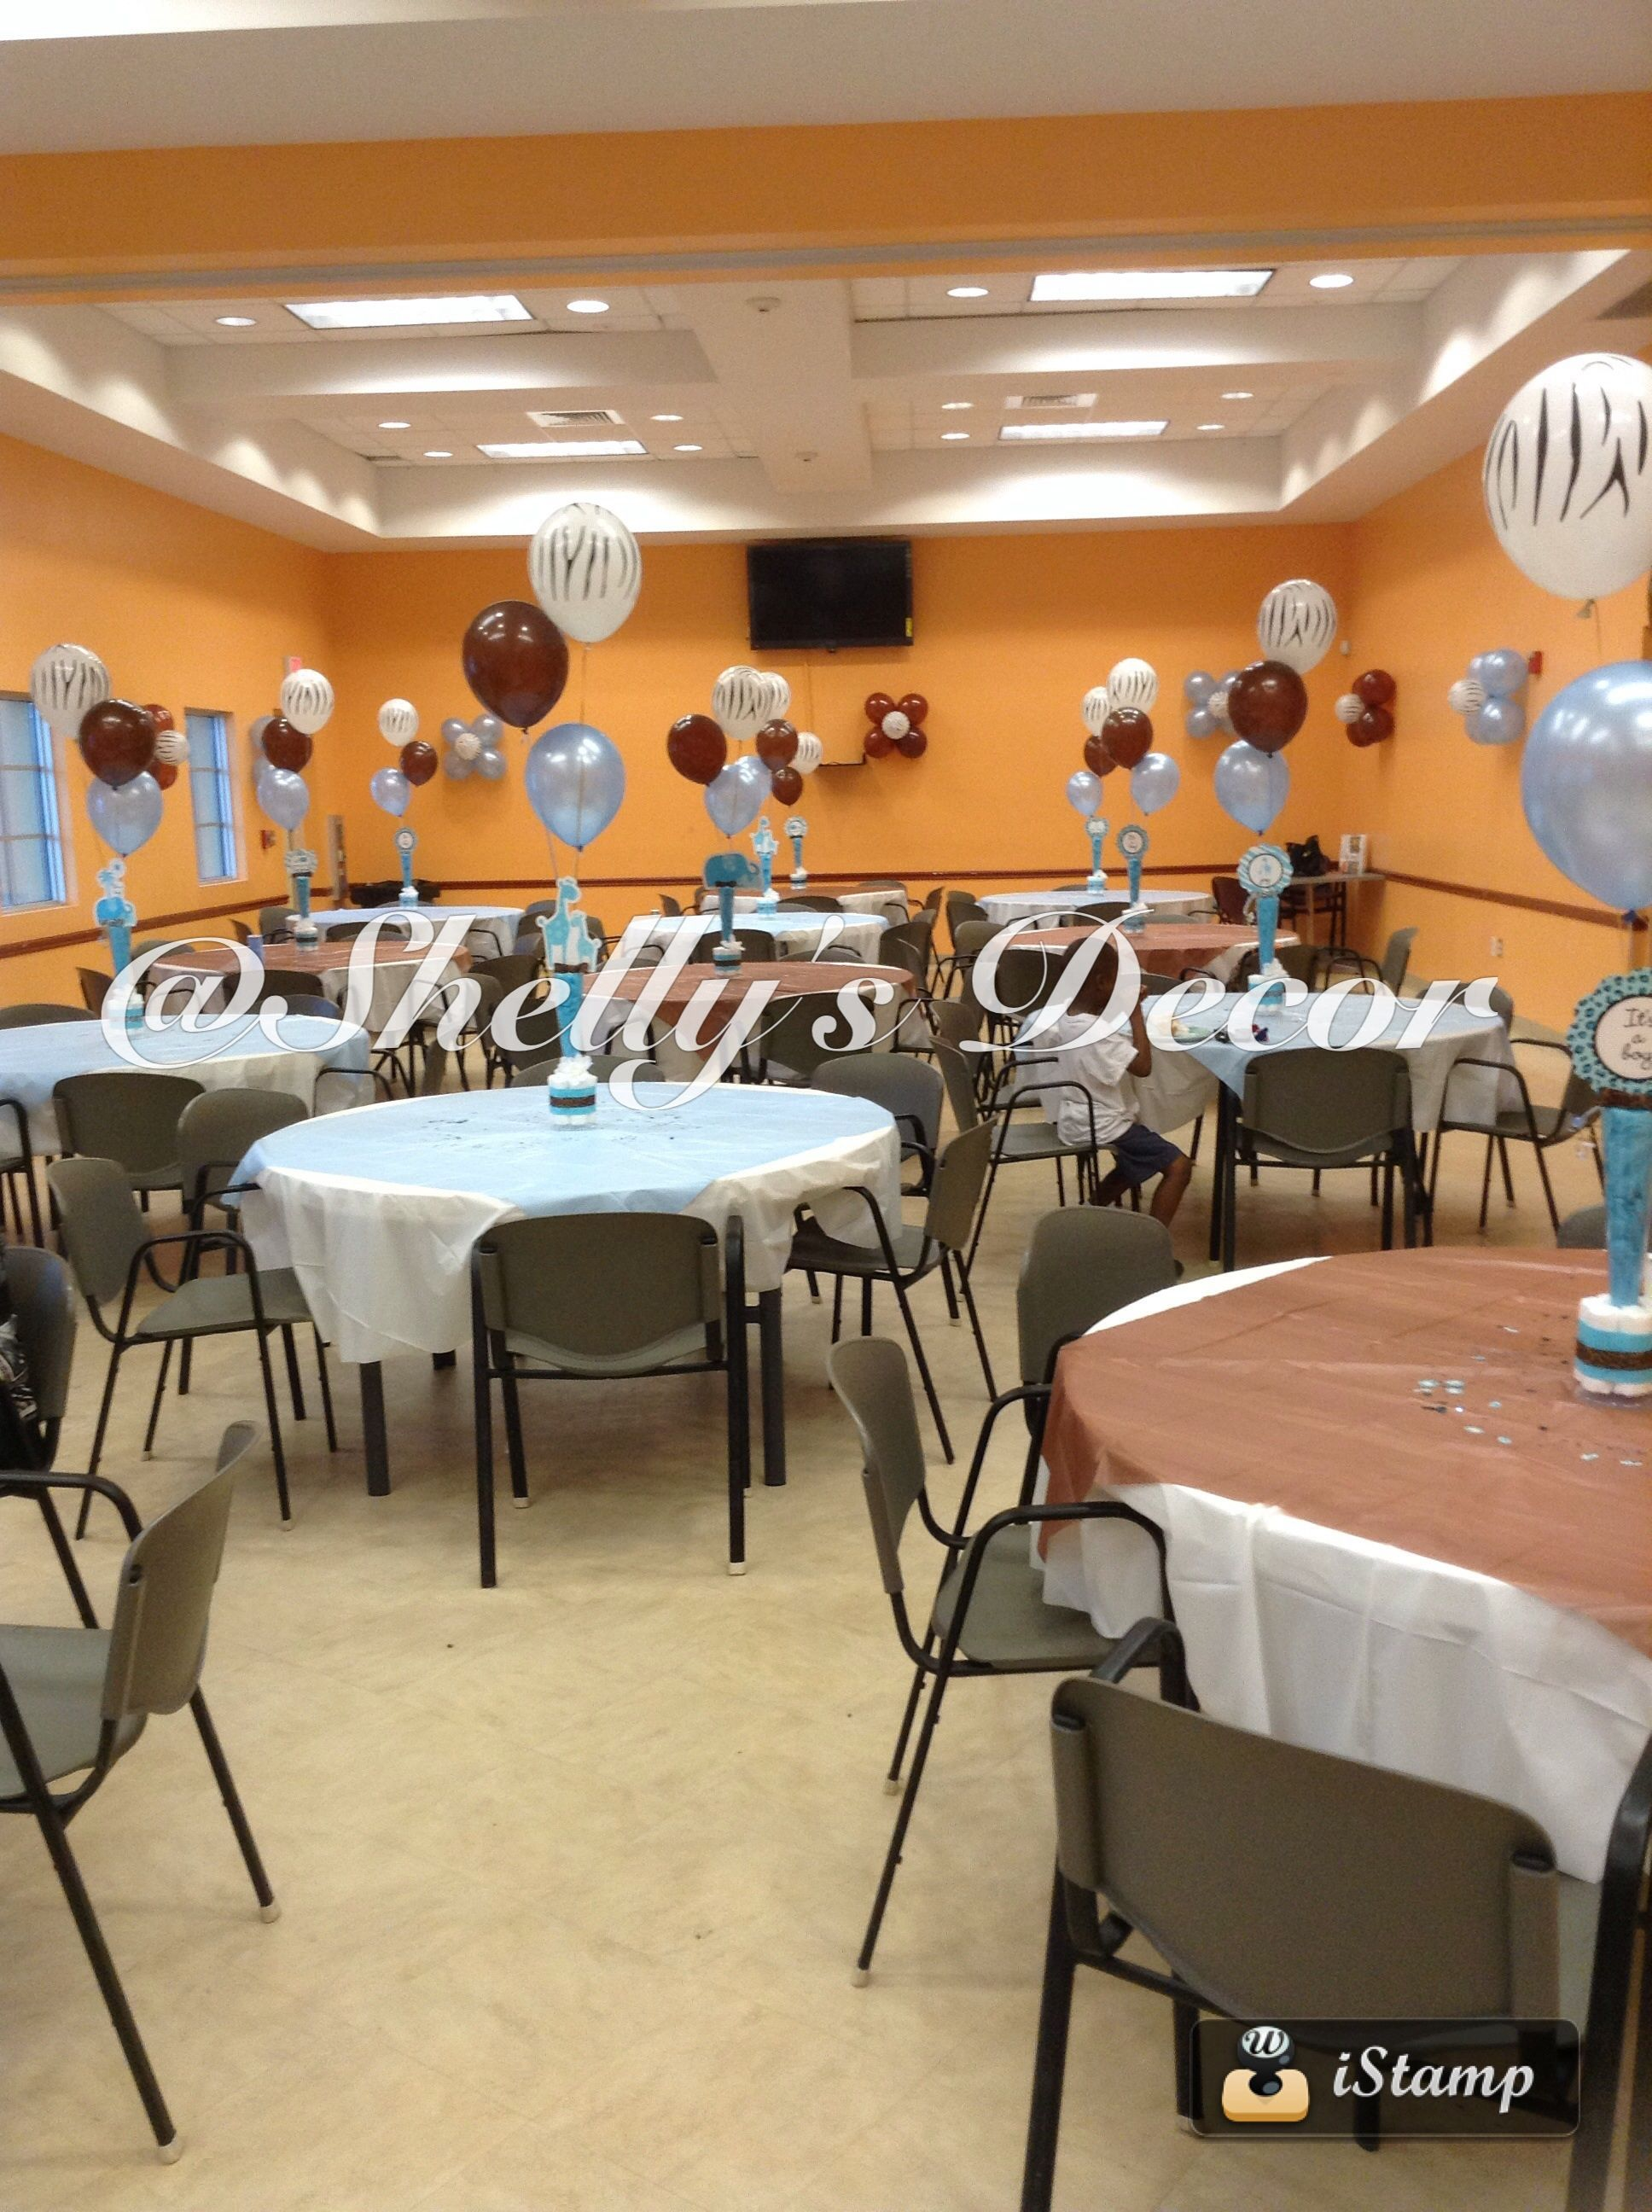 BABY SHOWER -table set-up | Our Events | Pinterest | Baby shower ...